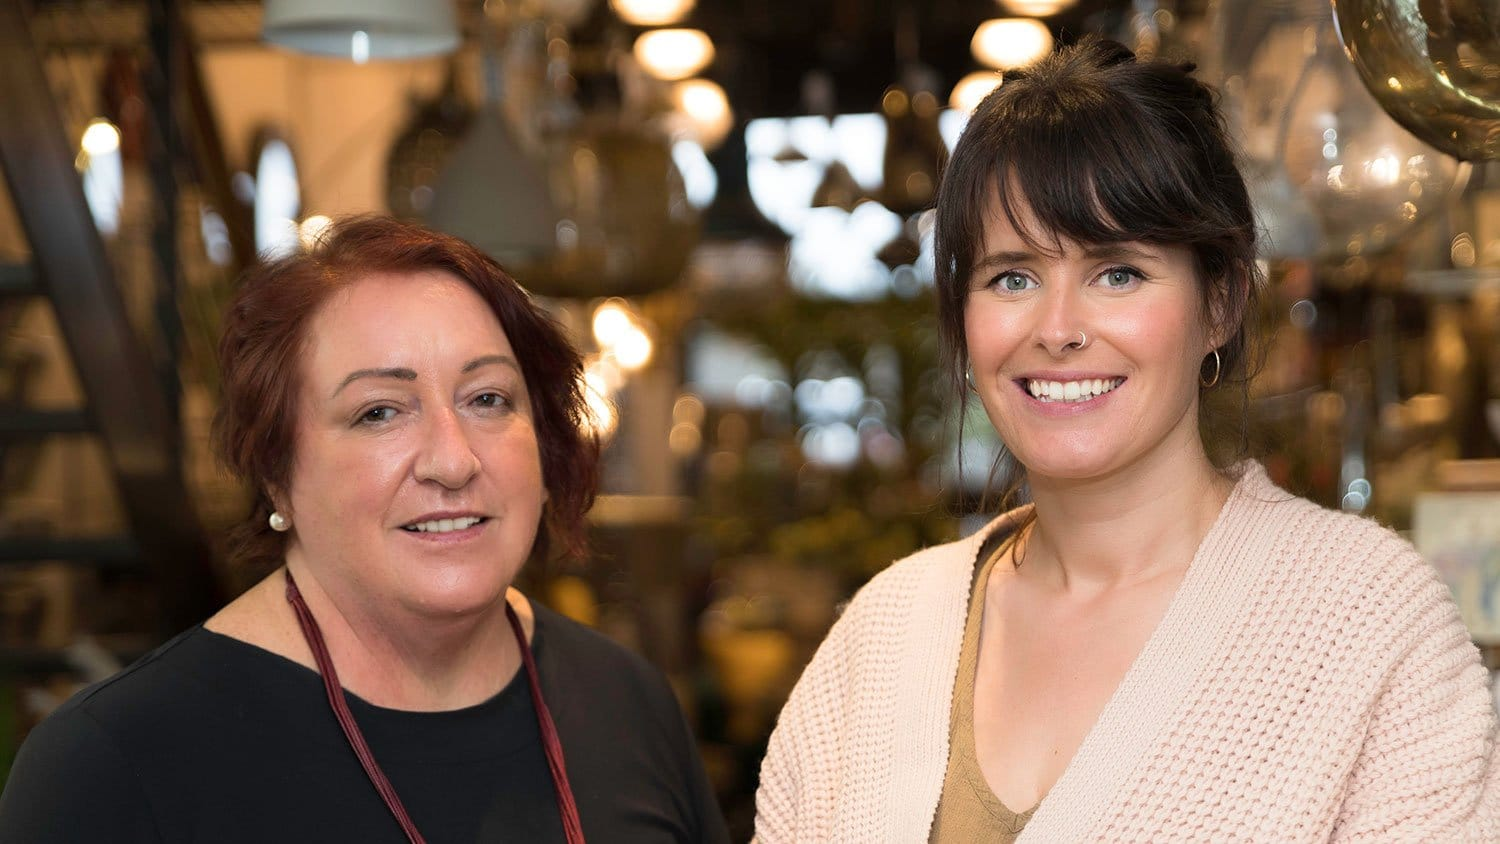 Maire Kennelly and Amy Sheehy at Elizabelle Interiors Listowel